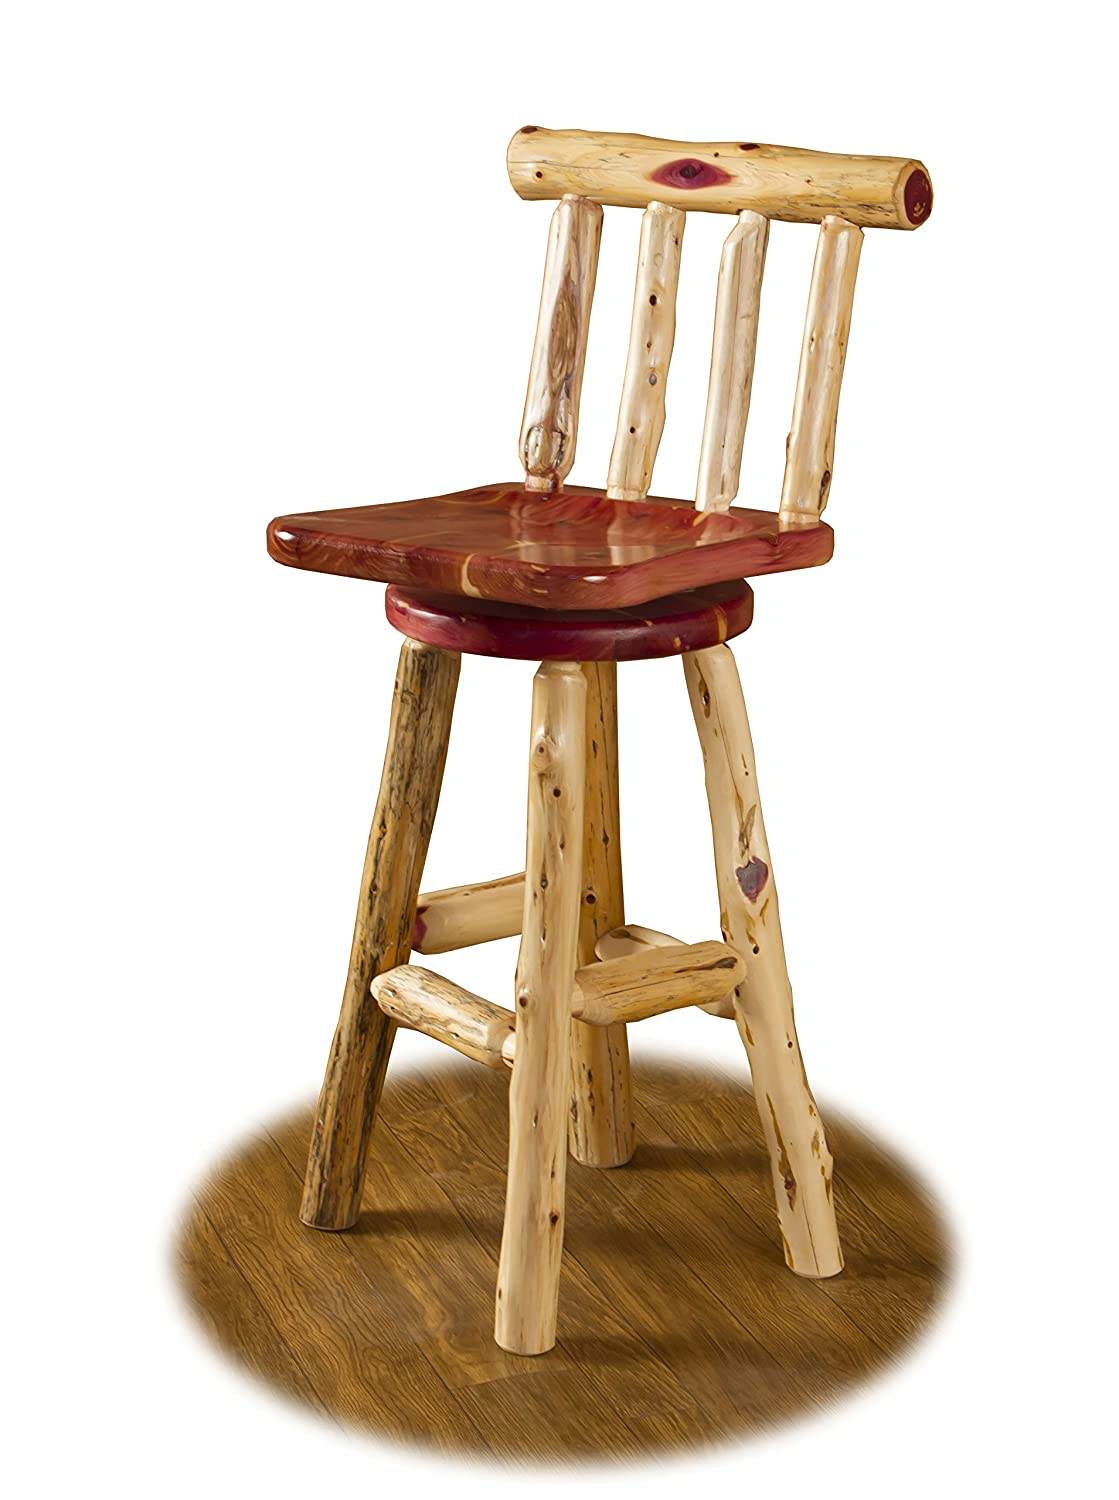 Admirable Amazon Com Rustic Red Cedar Log 30 Bar Height Swivel Bar Caraccident5 Cool Chair Designs And Ideas Caraccident5Info